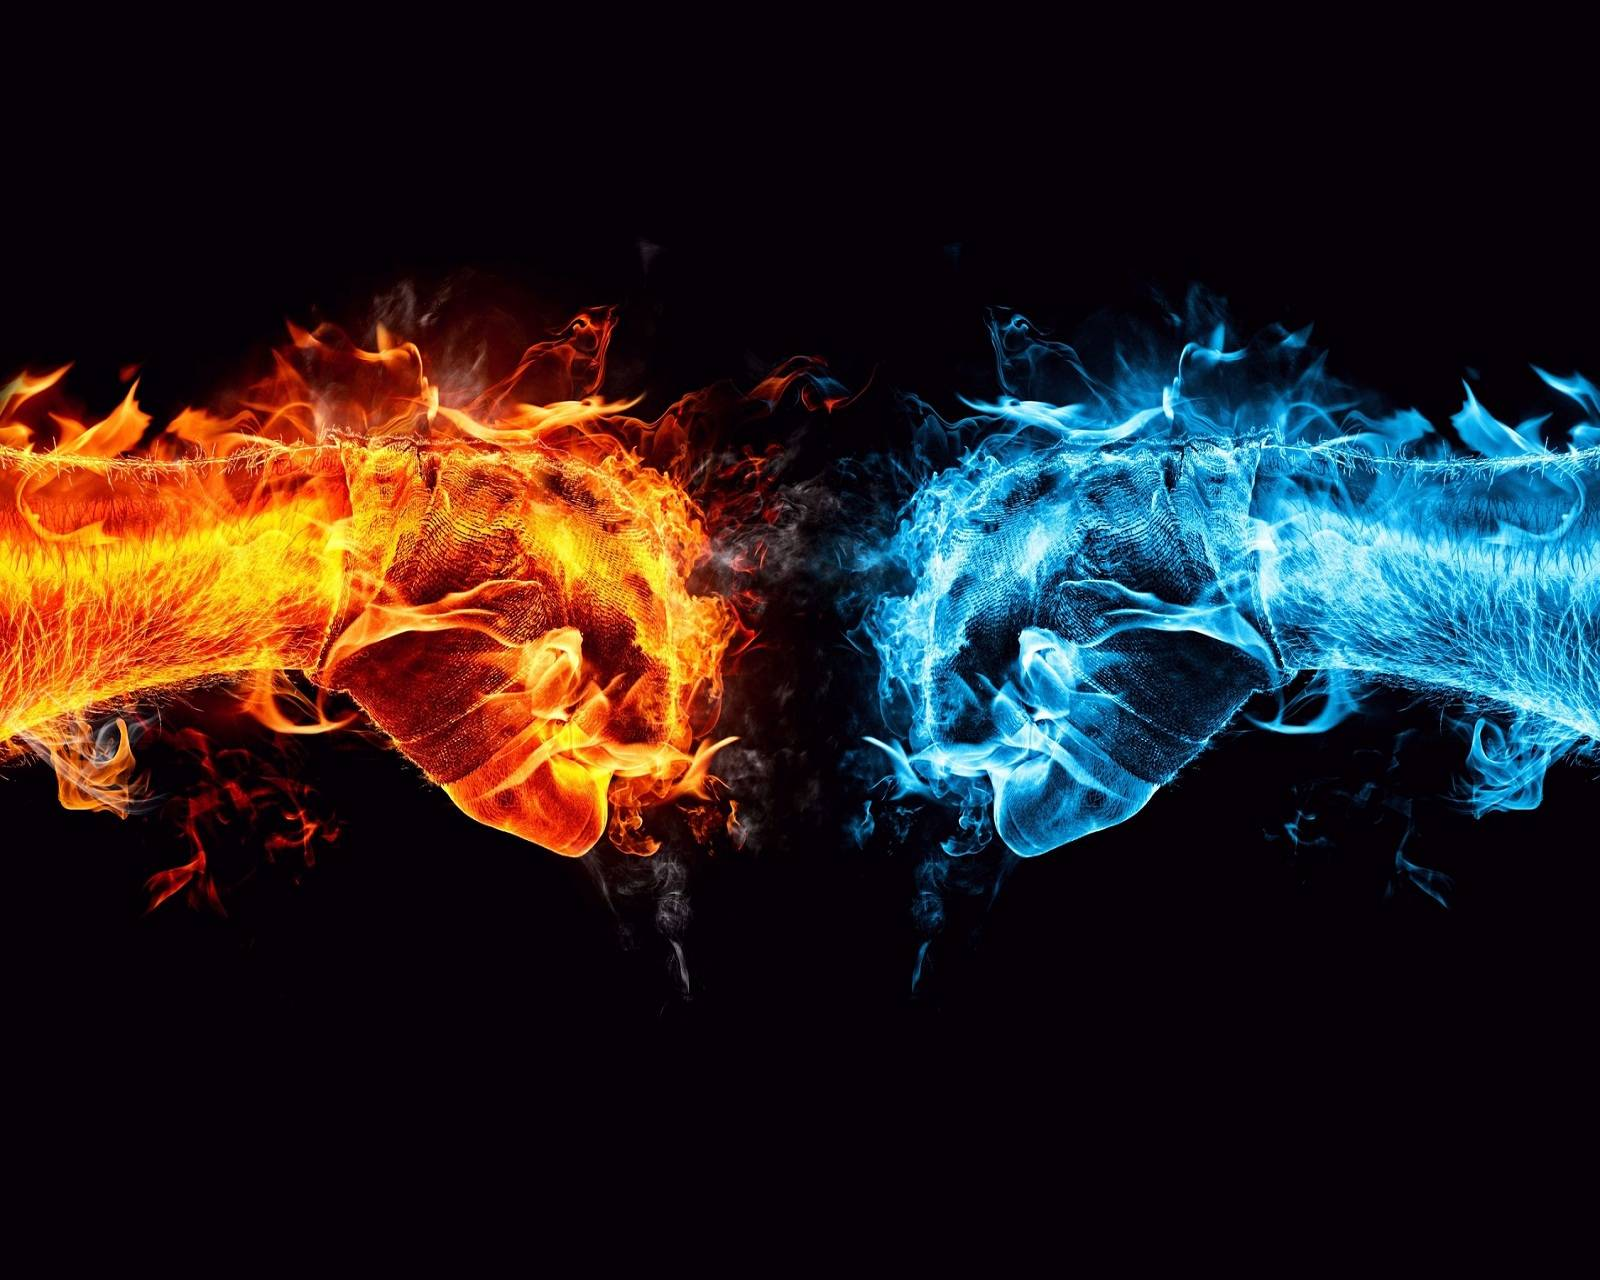 Fire Ice Conflict